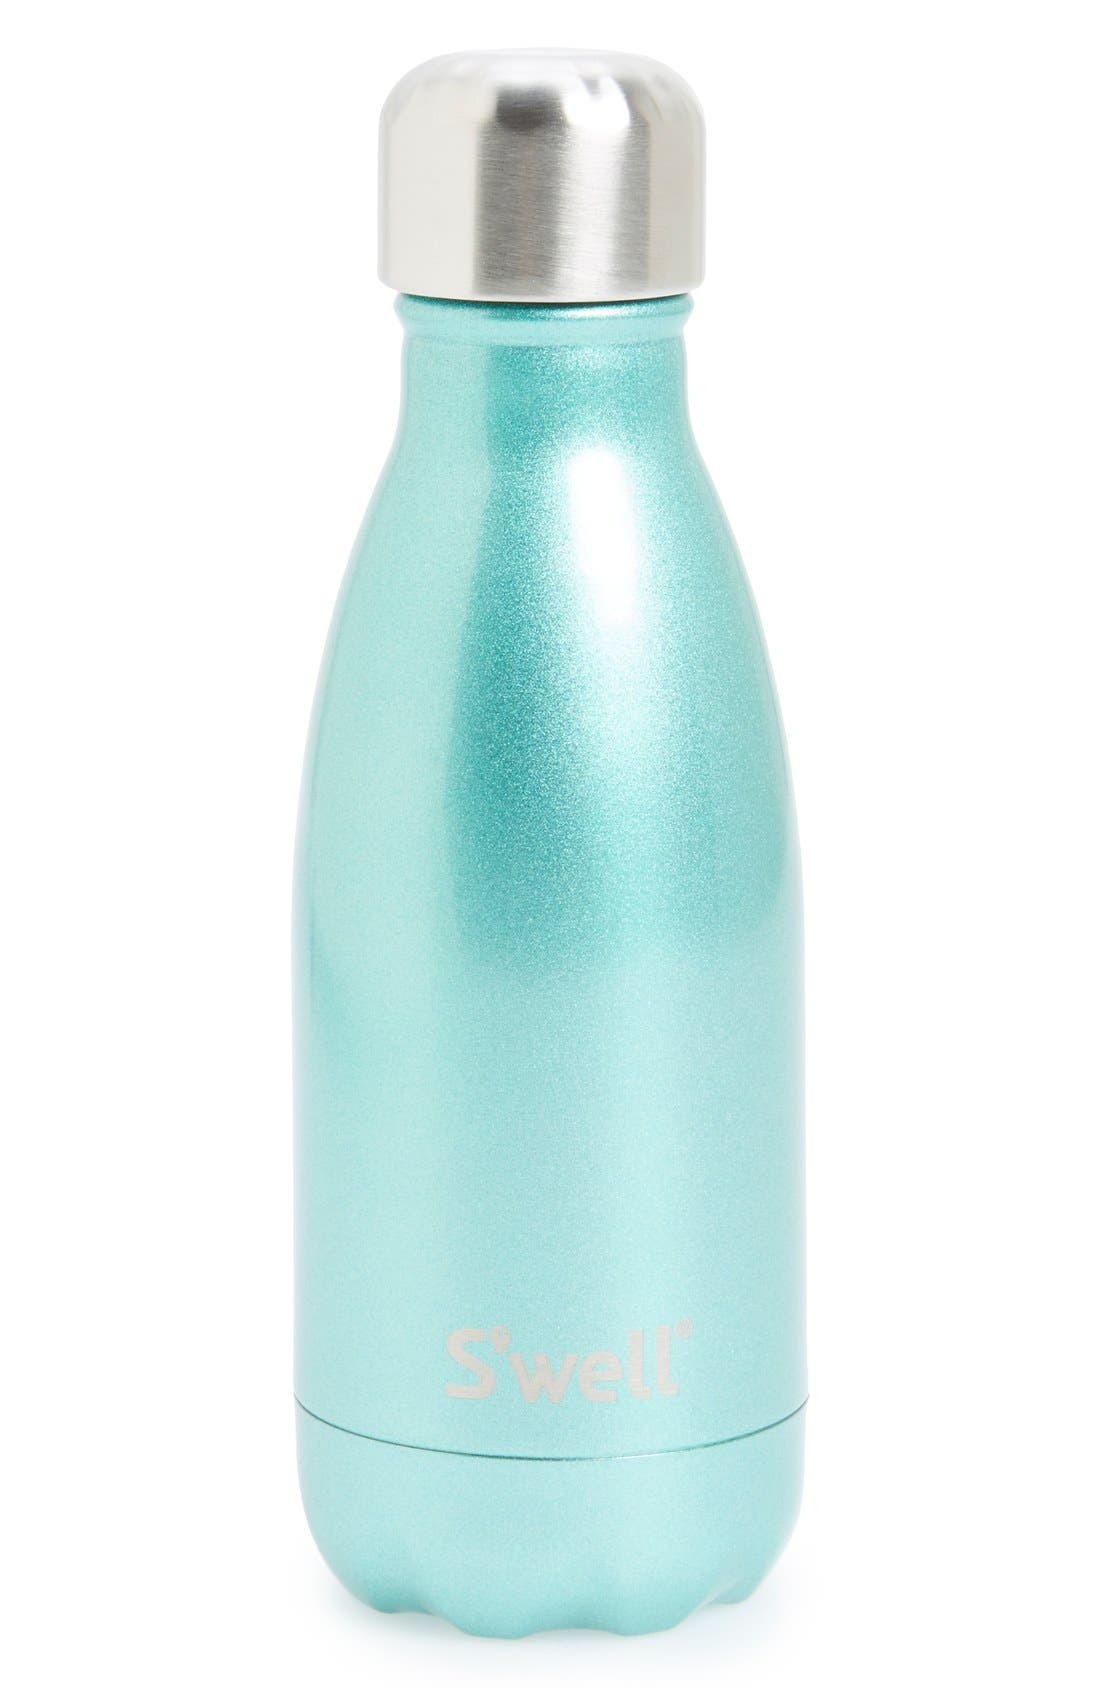 Alternate Image 1 Selected - S'well 'Sweet Mint' Insulated Stainless Steel Water Bottle